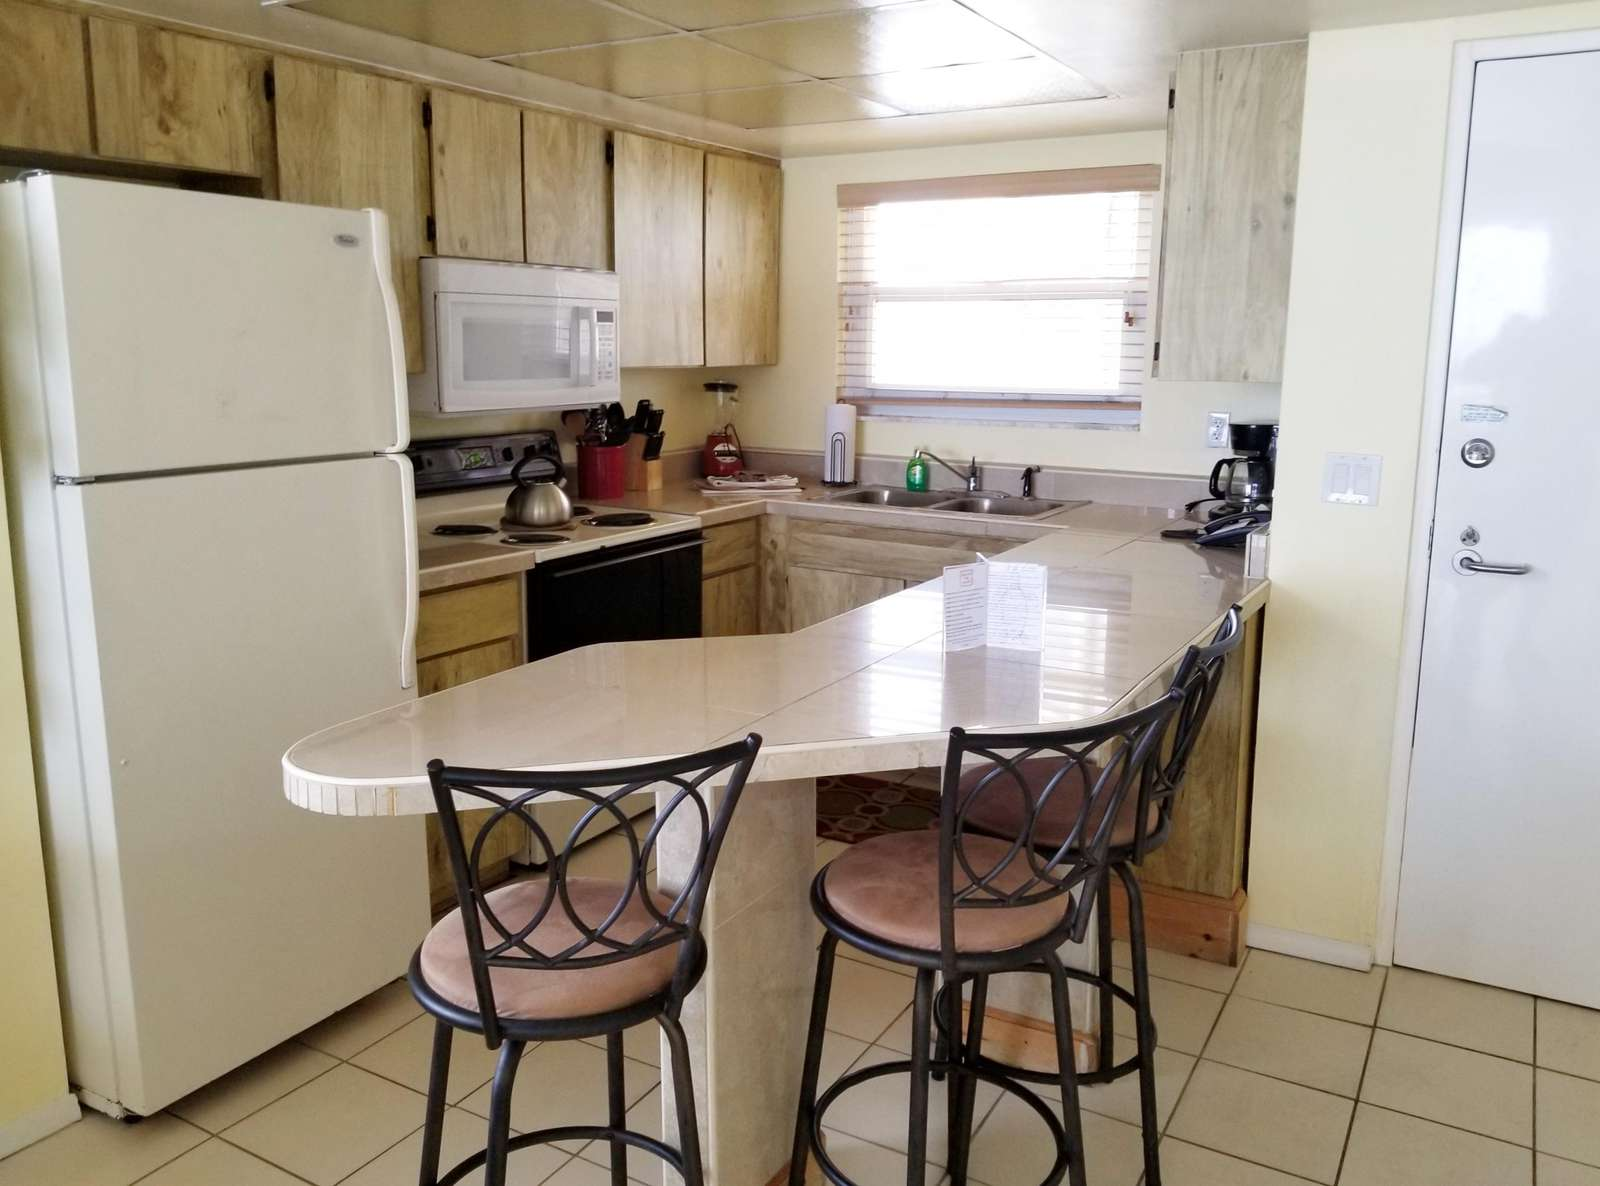 Kitchen from dining area